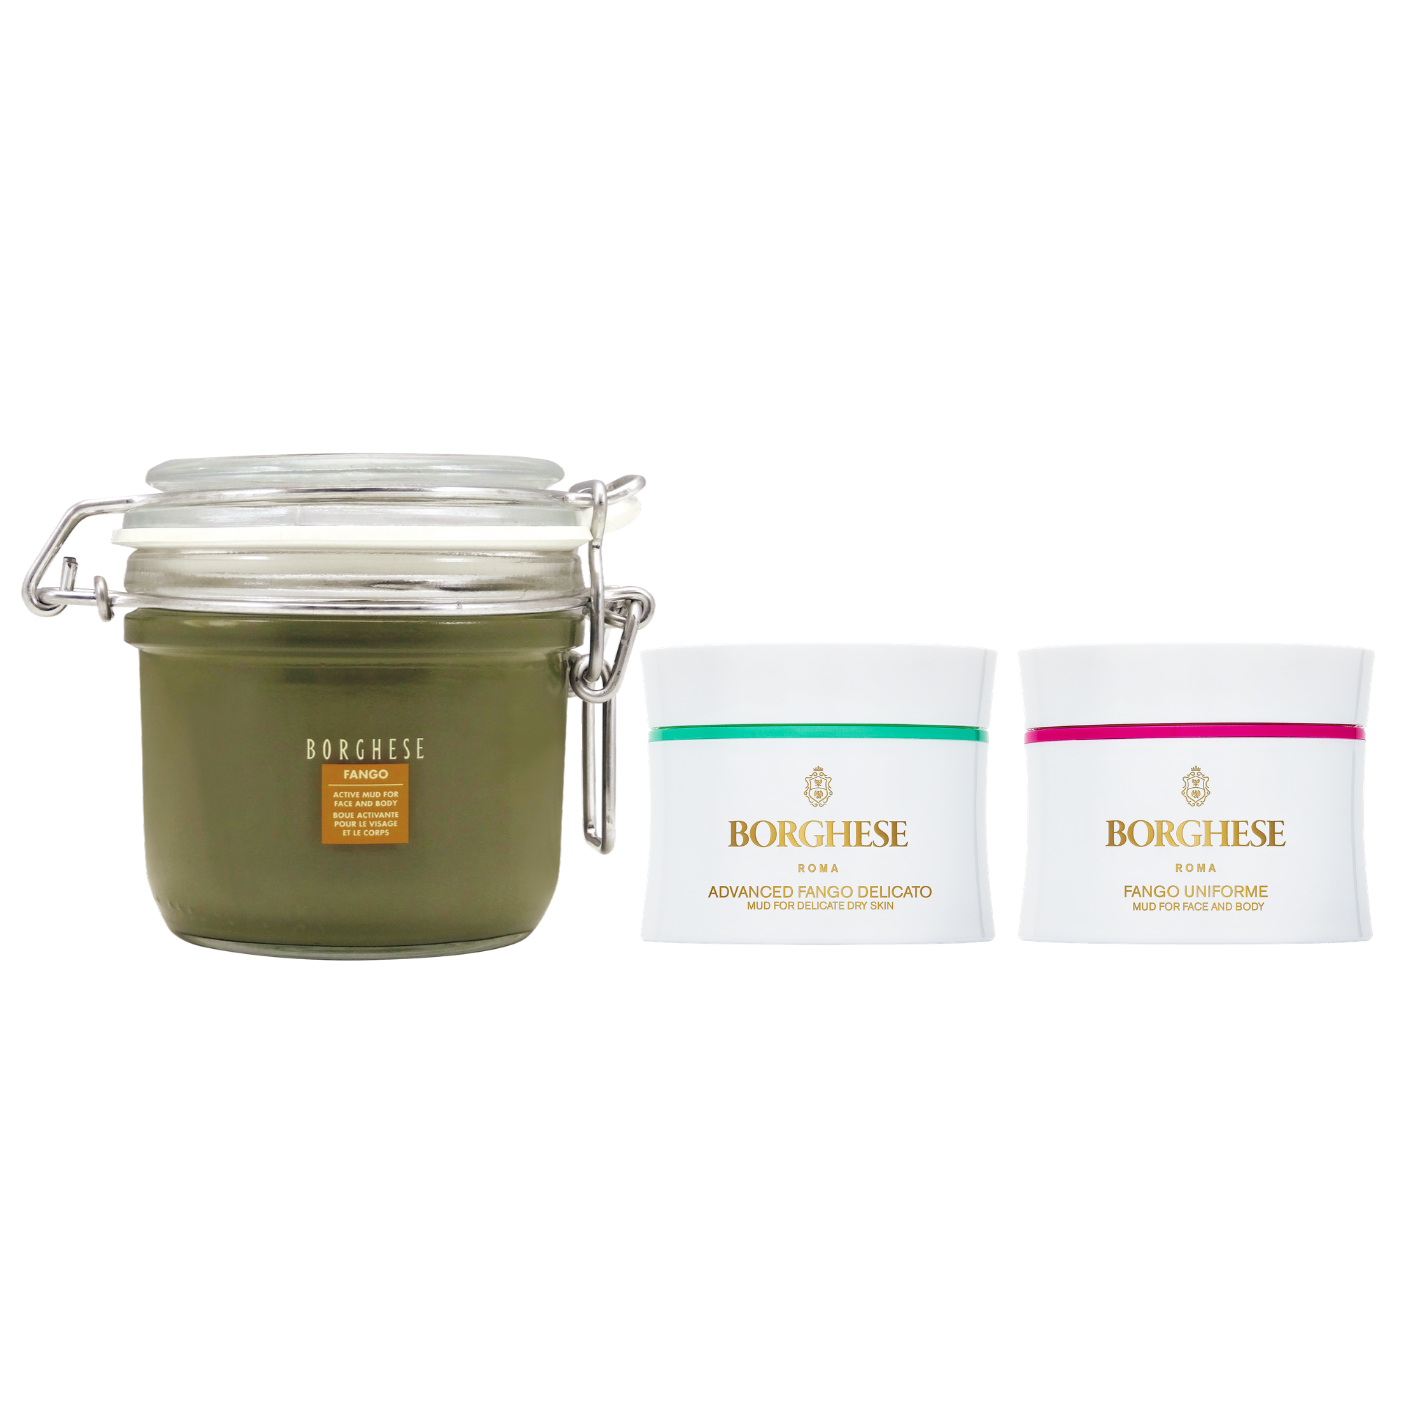 【Buy 1 get 2 Free】Anniversary Limited Fango Mud Mask Set (Active)